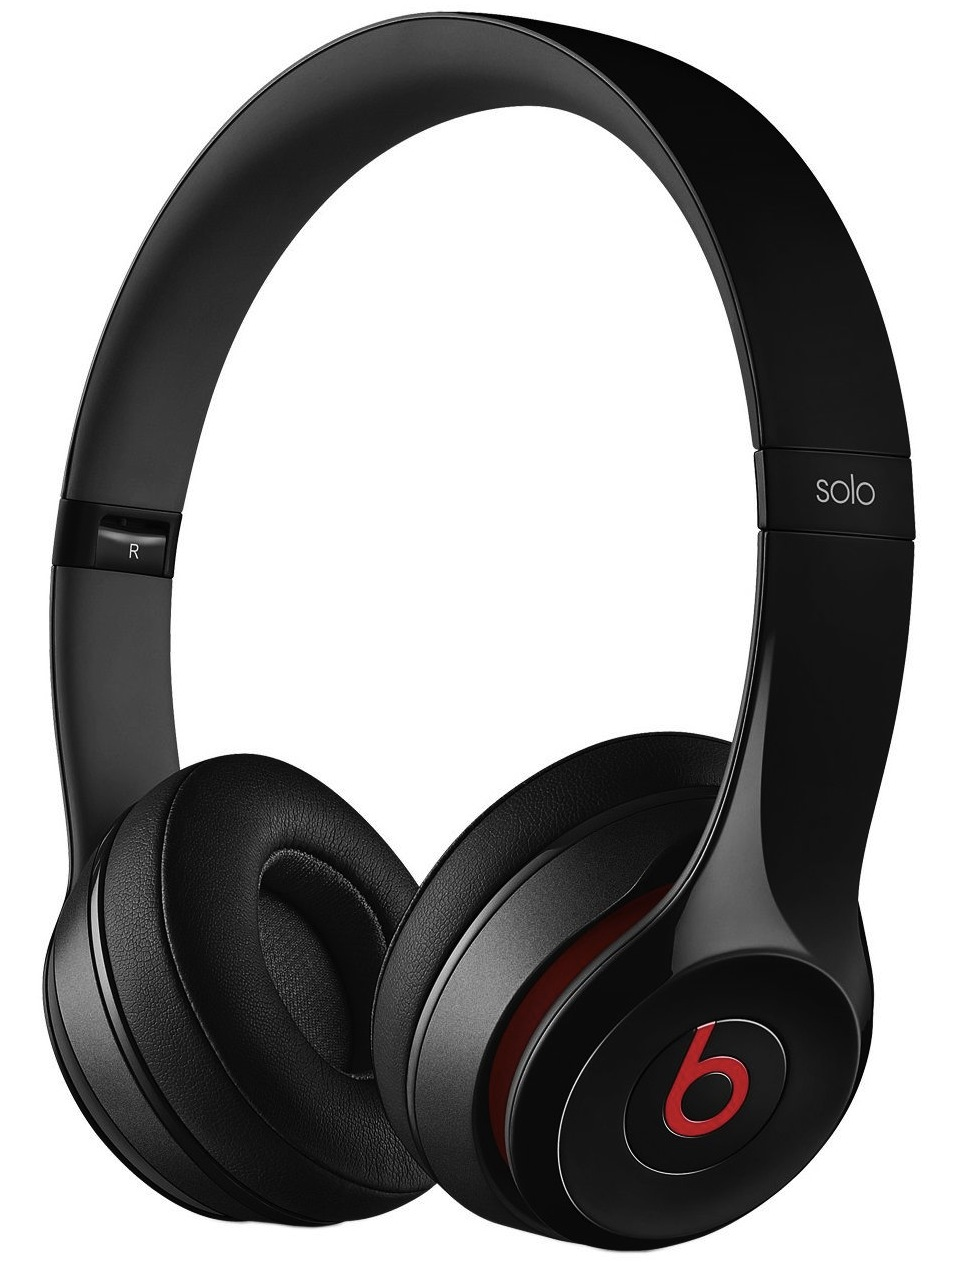 Cadou de Craciun Casti audio Beats by Dr. Dre Solo 2